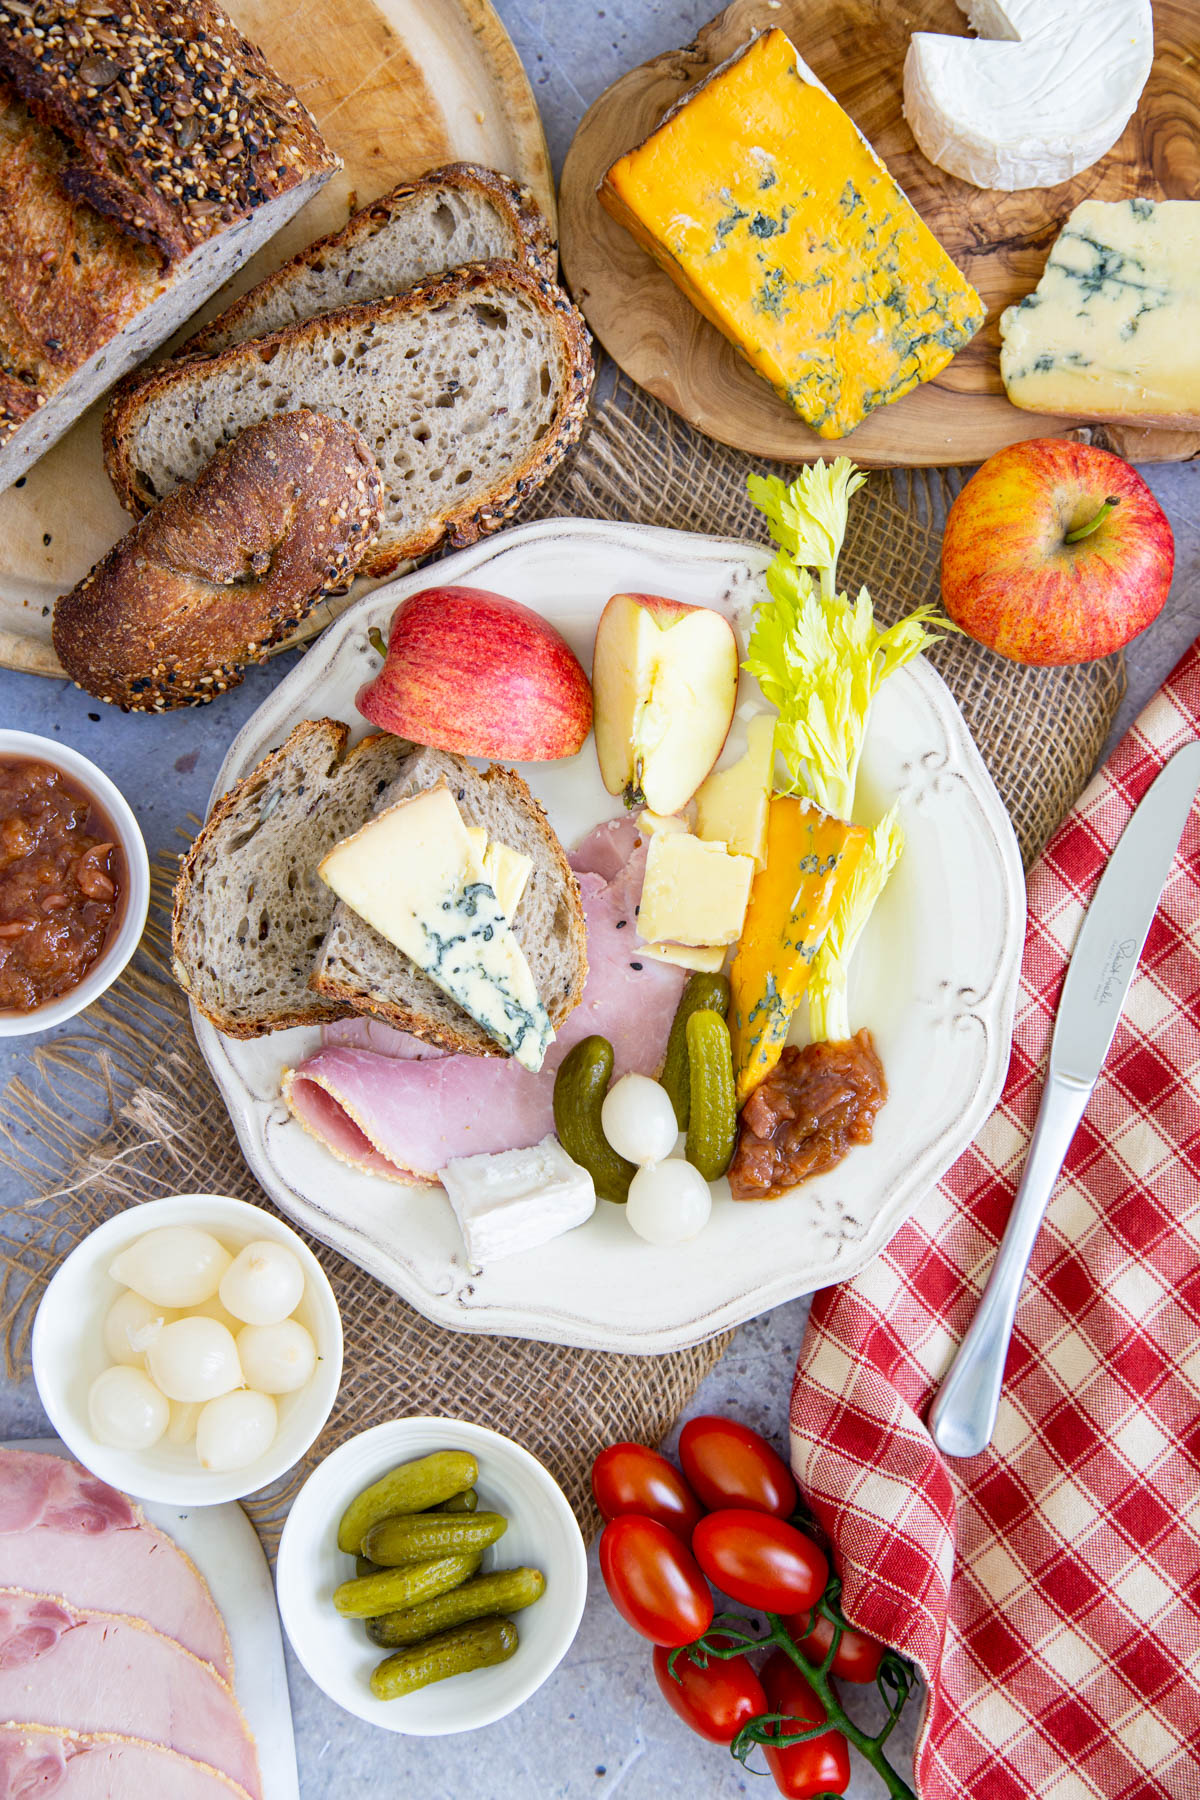 A top down picture of a hearty ploughmans lunch with bread, ham cheese, apples, celery and garnishes.